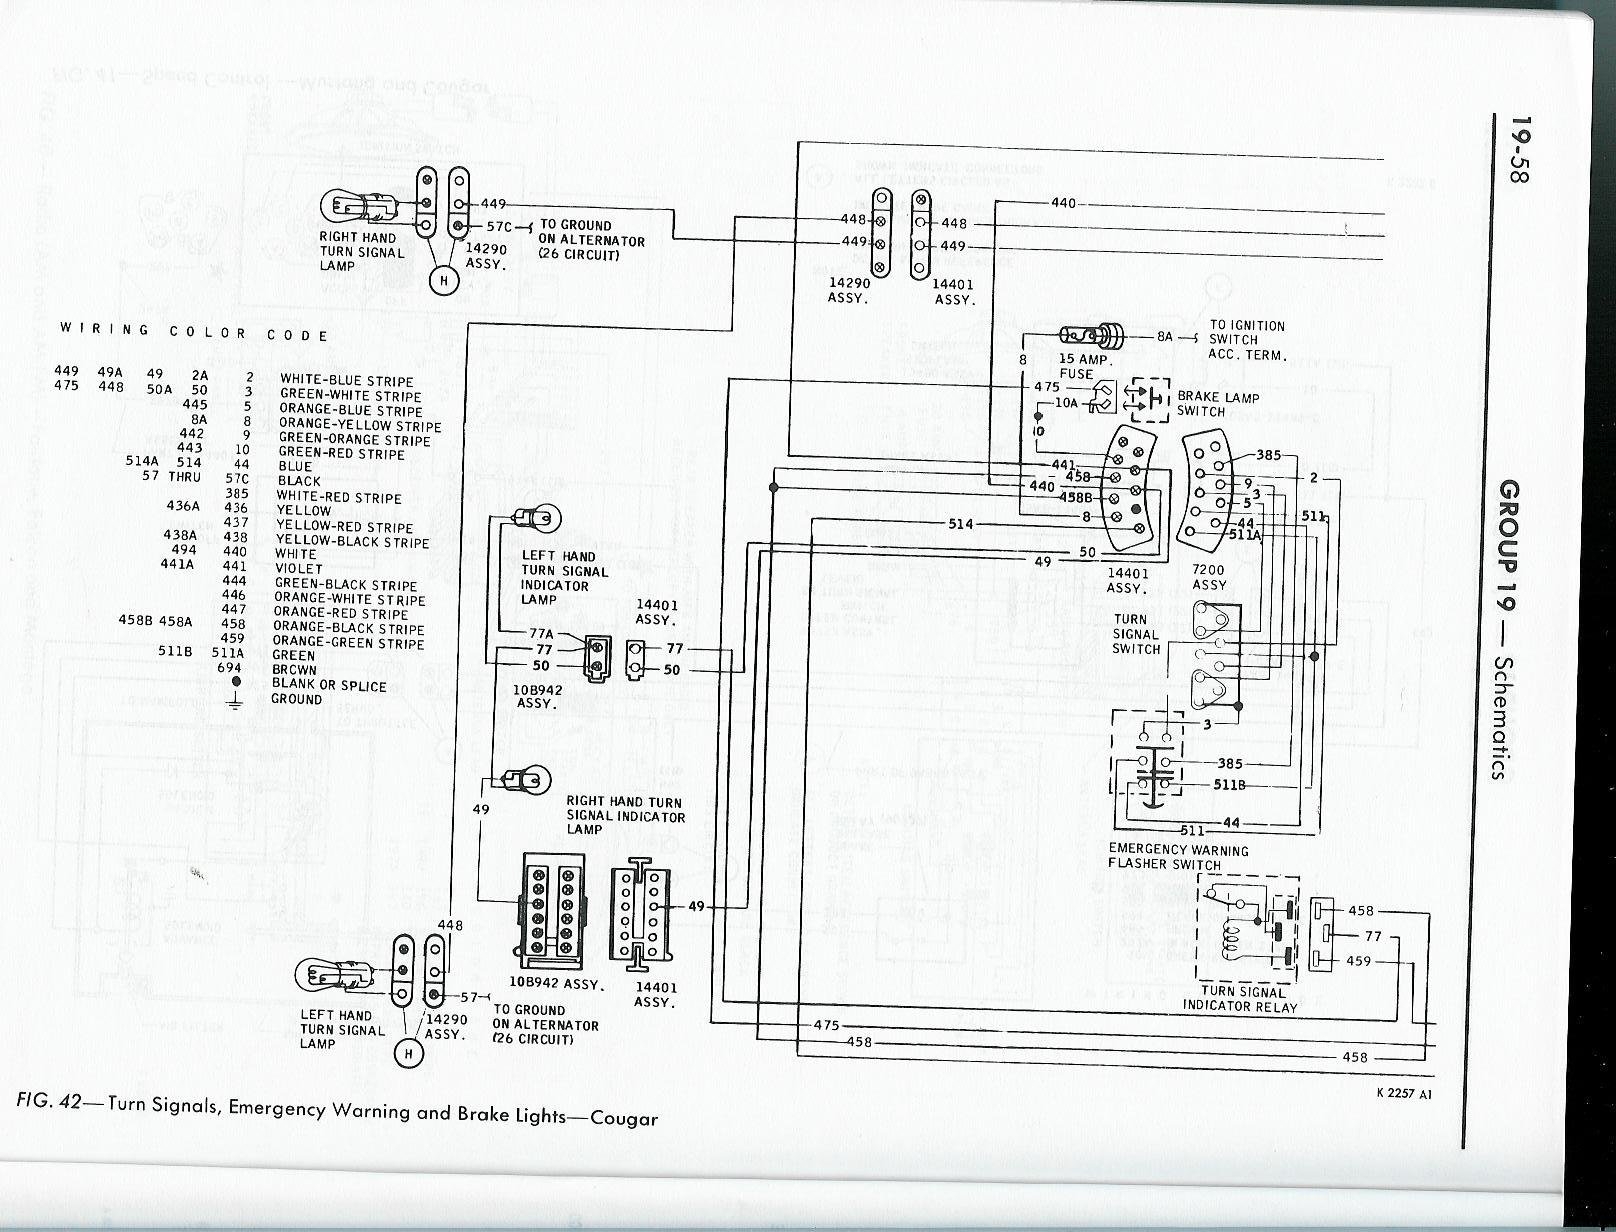 67 Cougar Turn Signal Wiring Diagram Free Download 68 Mercury Best Site Harness Mustang At